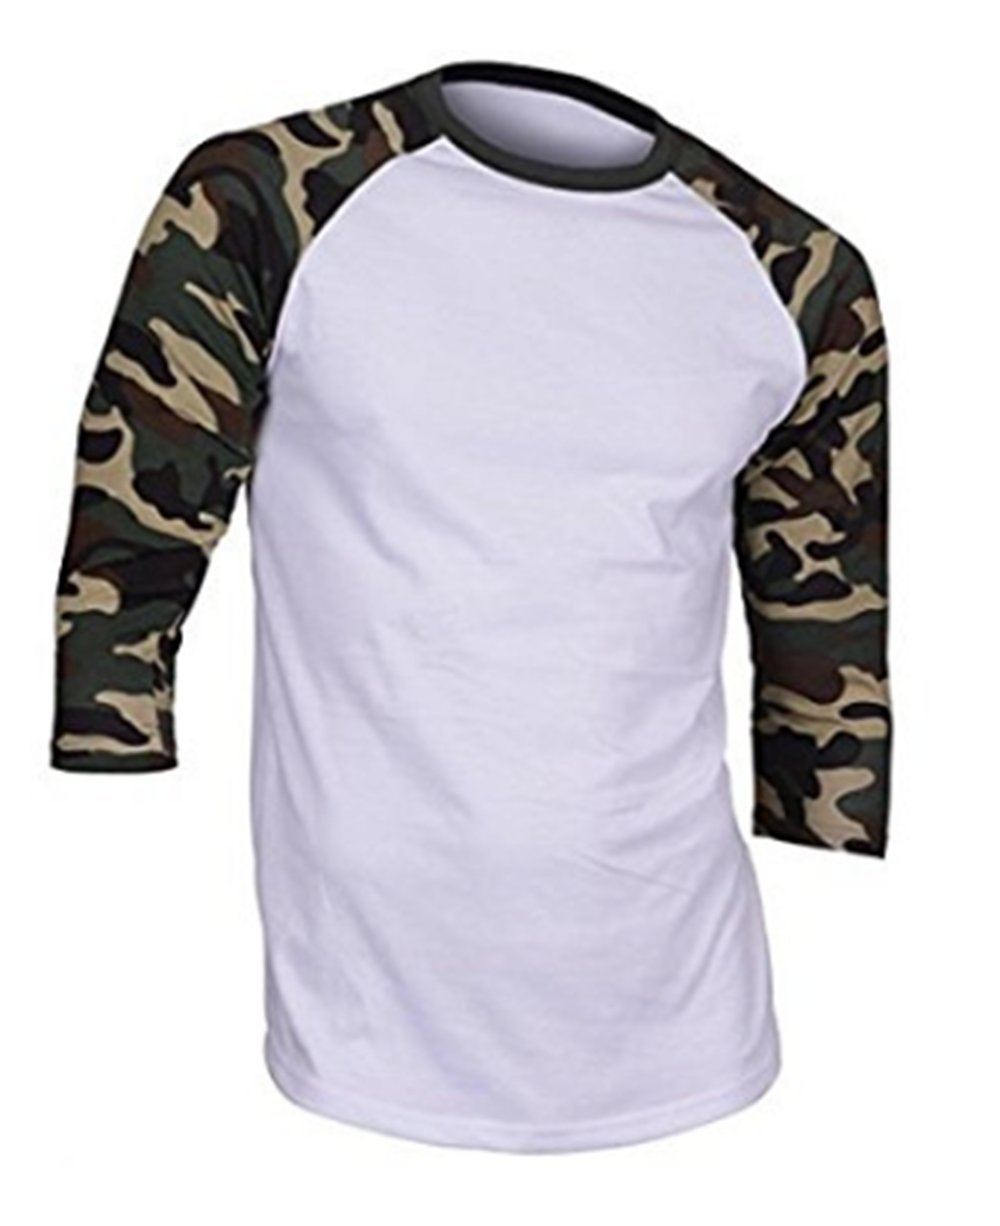 DREAM USA Men's Casual 3/4 Sleeve Baseball Tshirt Raglan Jersey Shirt R. Black & Light Green Camo Medium